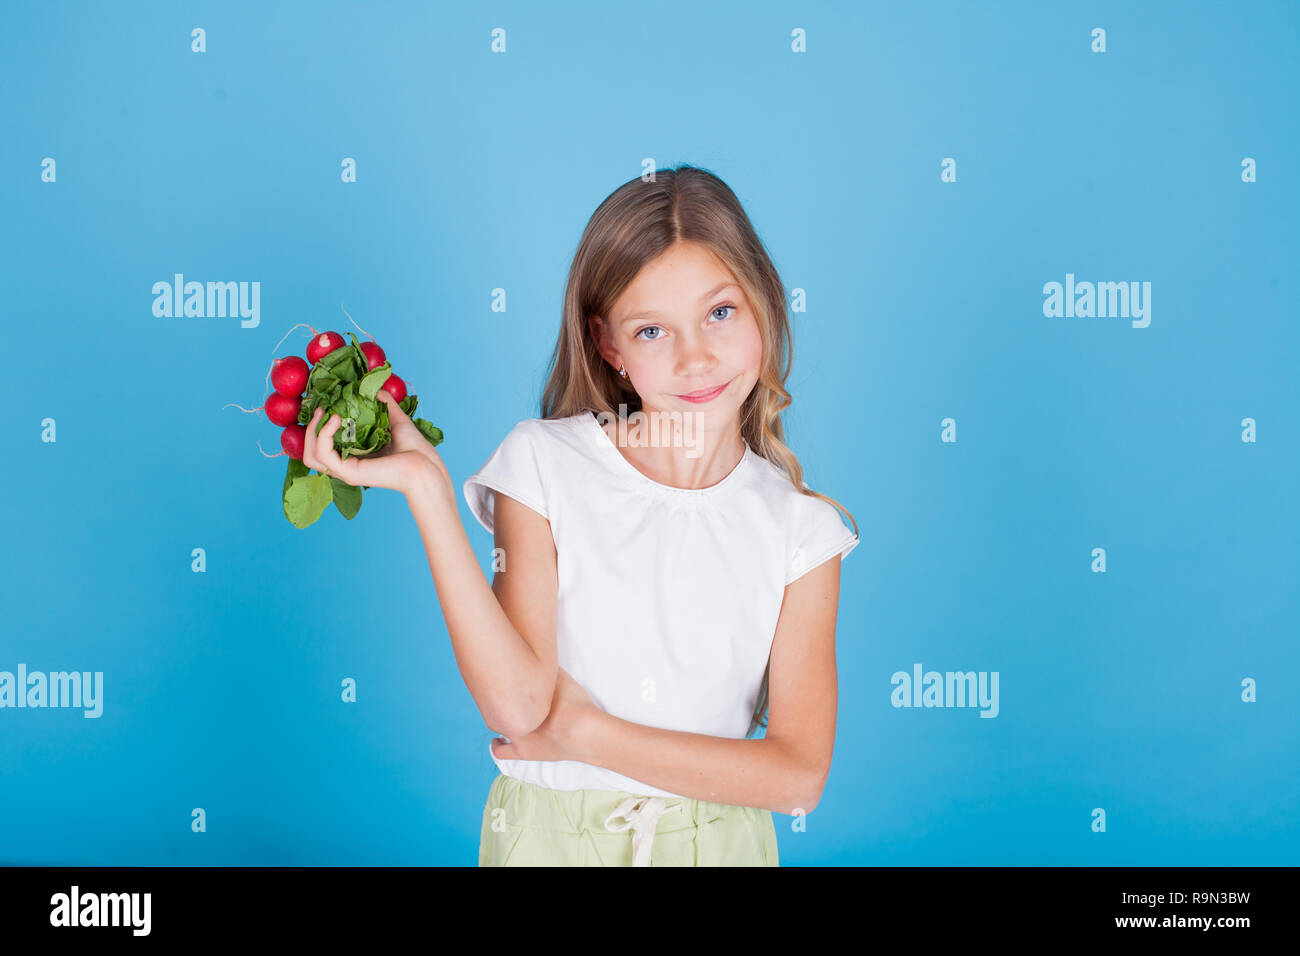 little girl with fresh vegetables red radishes - Stock Image